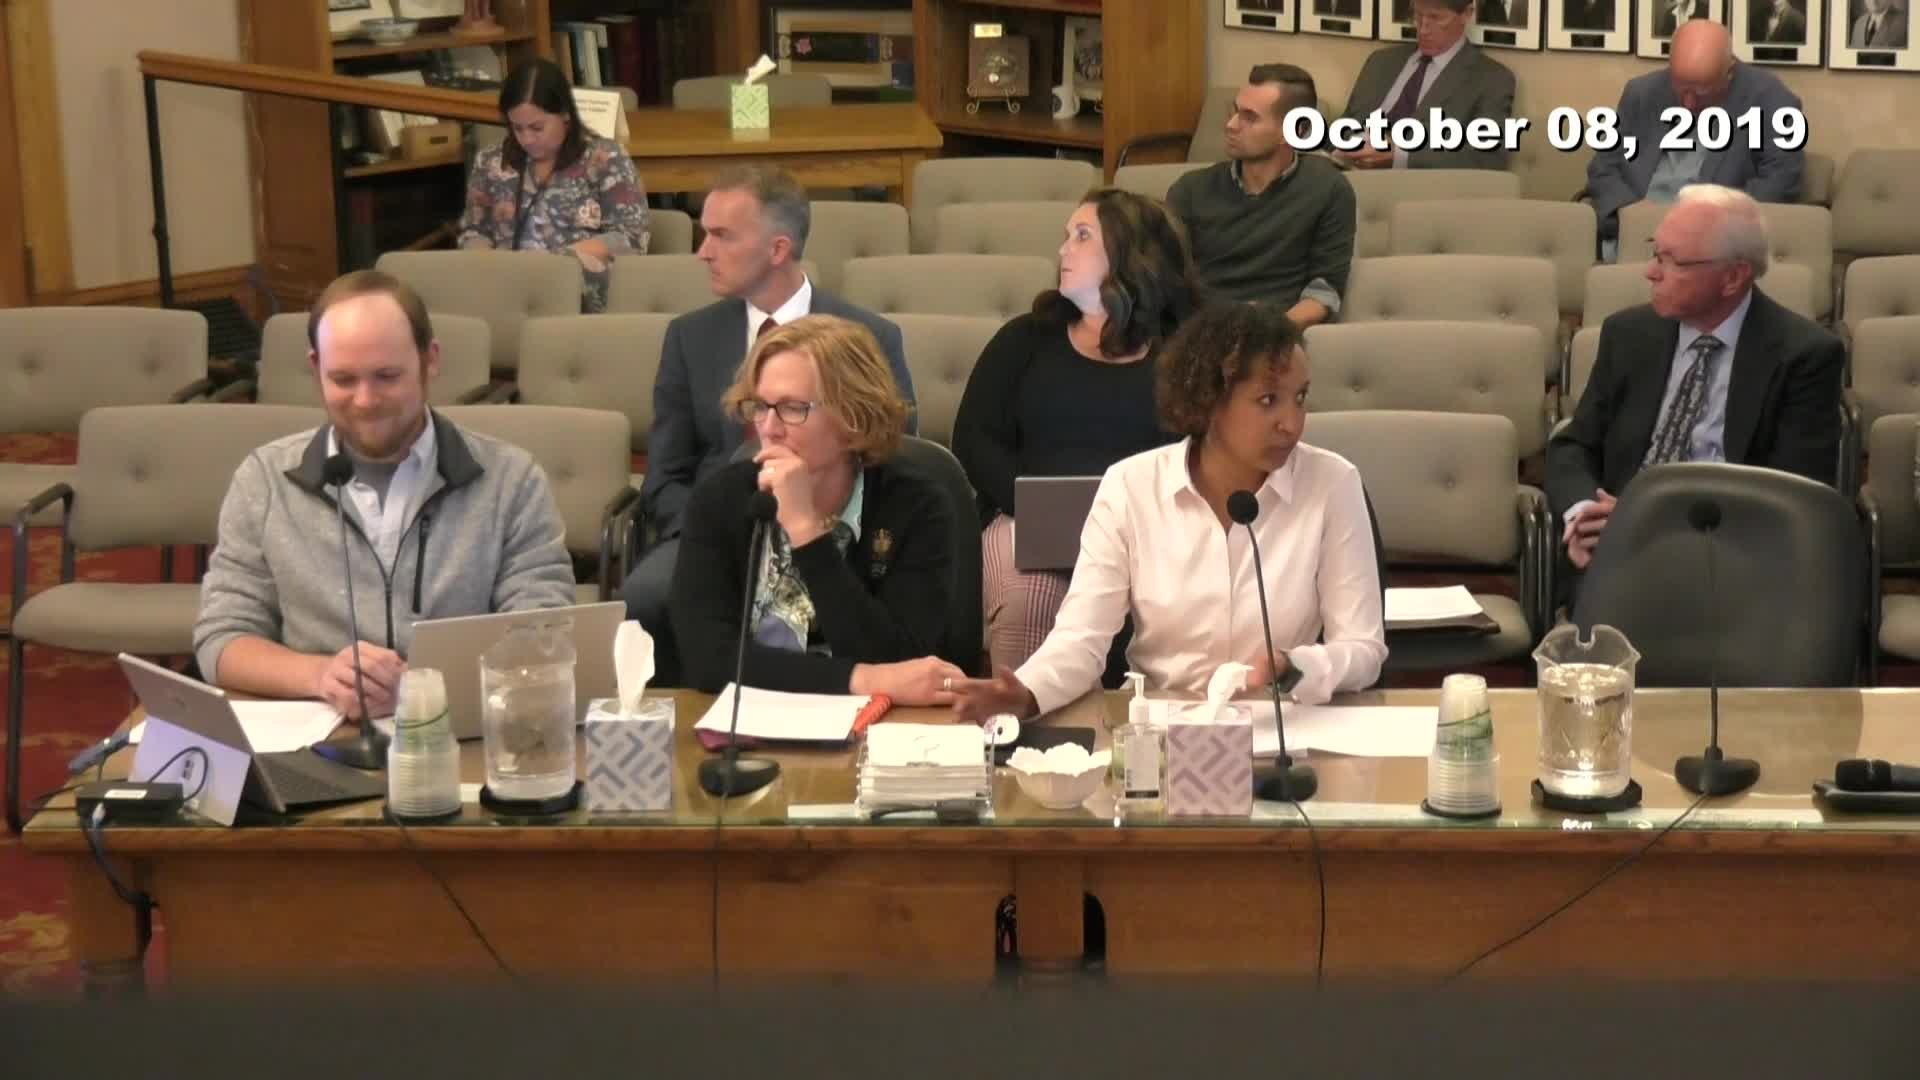 City Council Work Session - 10/08/2019